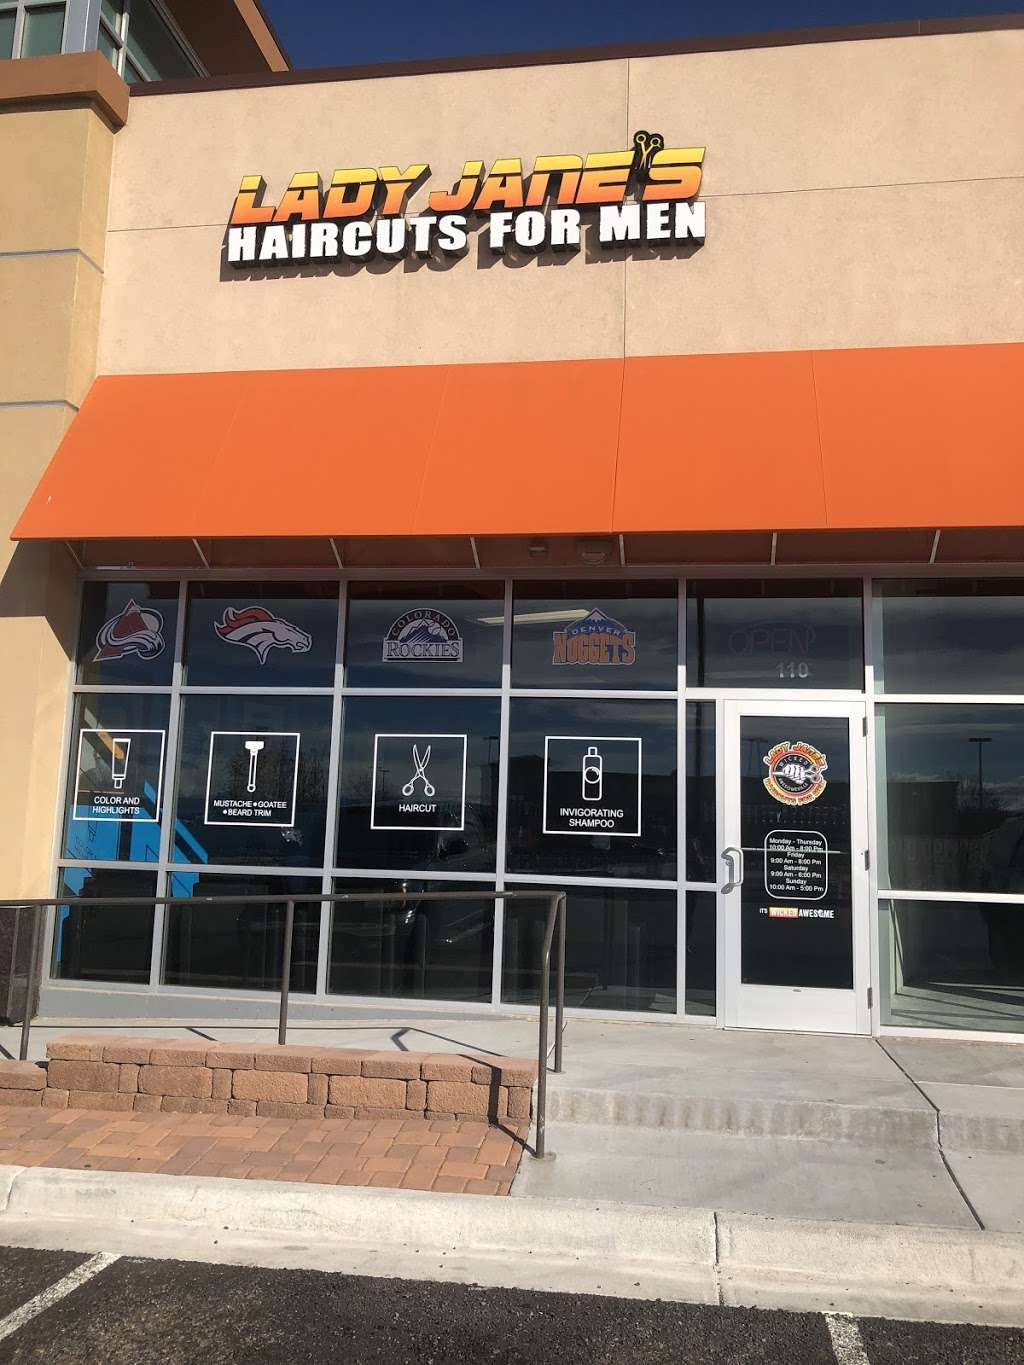 Lady Janes Haircuts for Men Parker - hair care    Photo 1 of 4   Address: 19420 Lincoln Ave, Parker, CO 80134, USA   Phone: (303) 242-1713